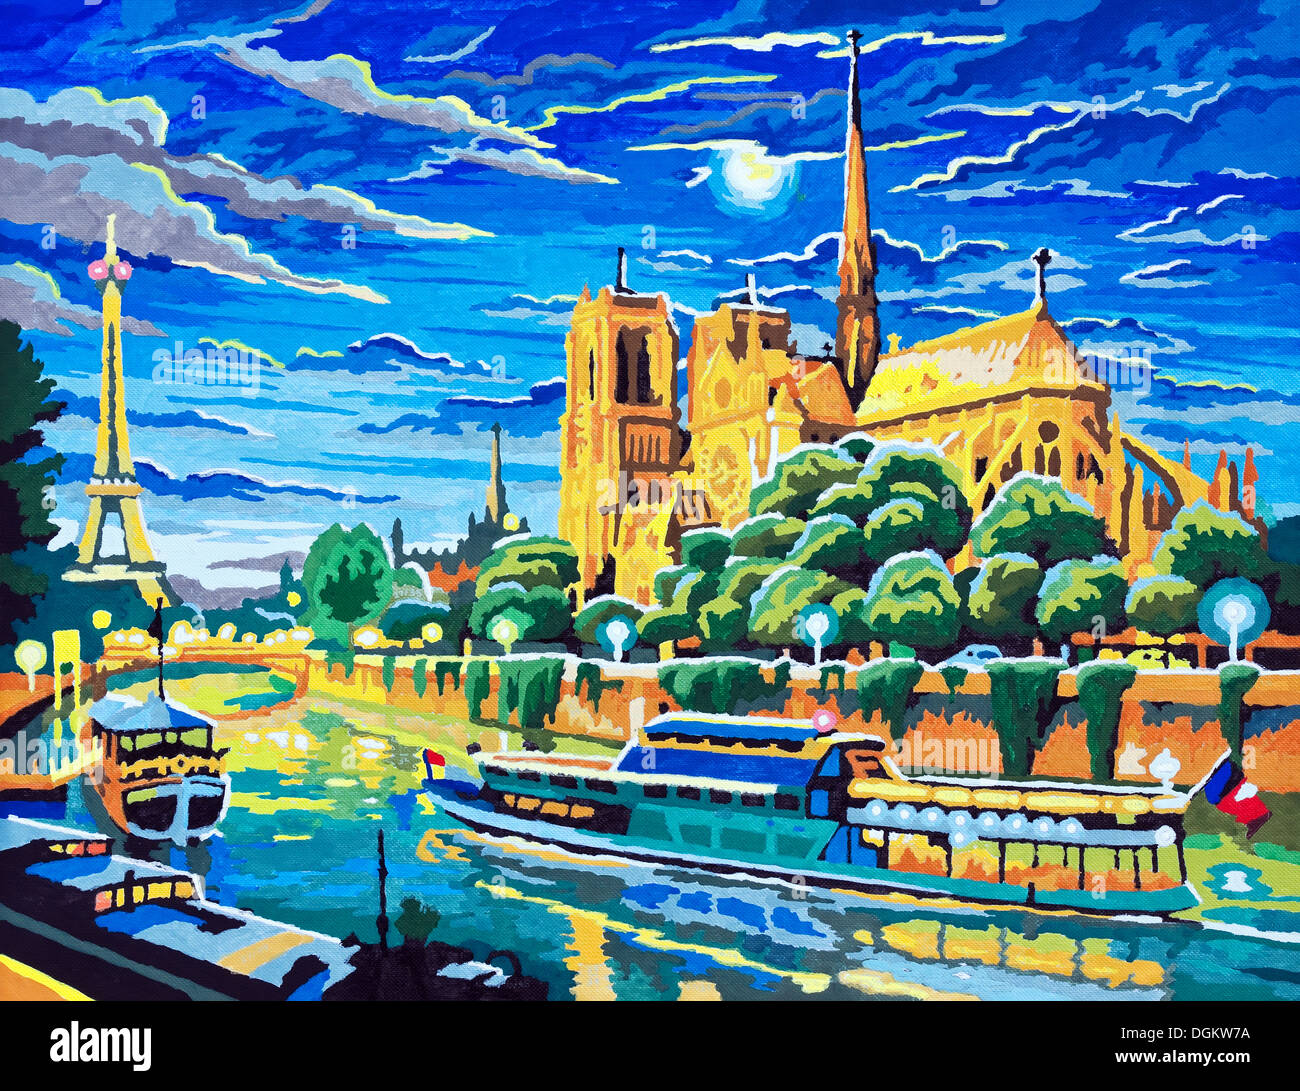 /'Notre Dame at Night/' Acrylic Painting on Canvas